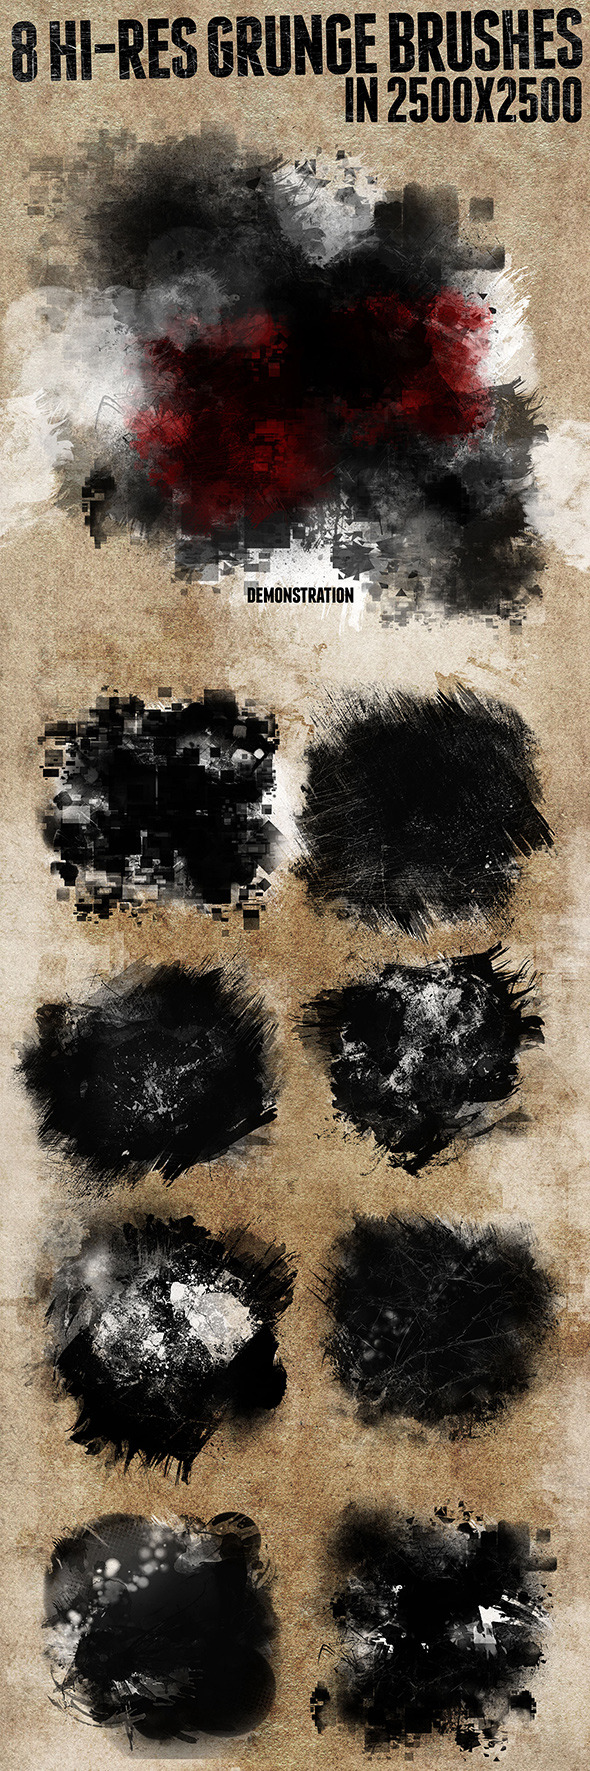 8 Hi-res Grunge Brushes - Abstract Brushes